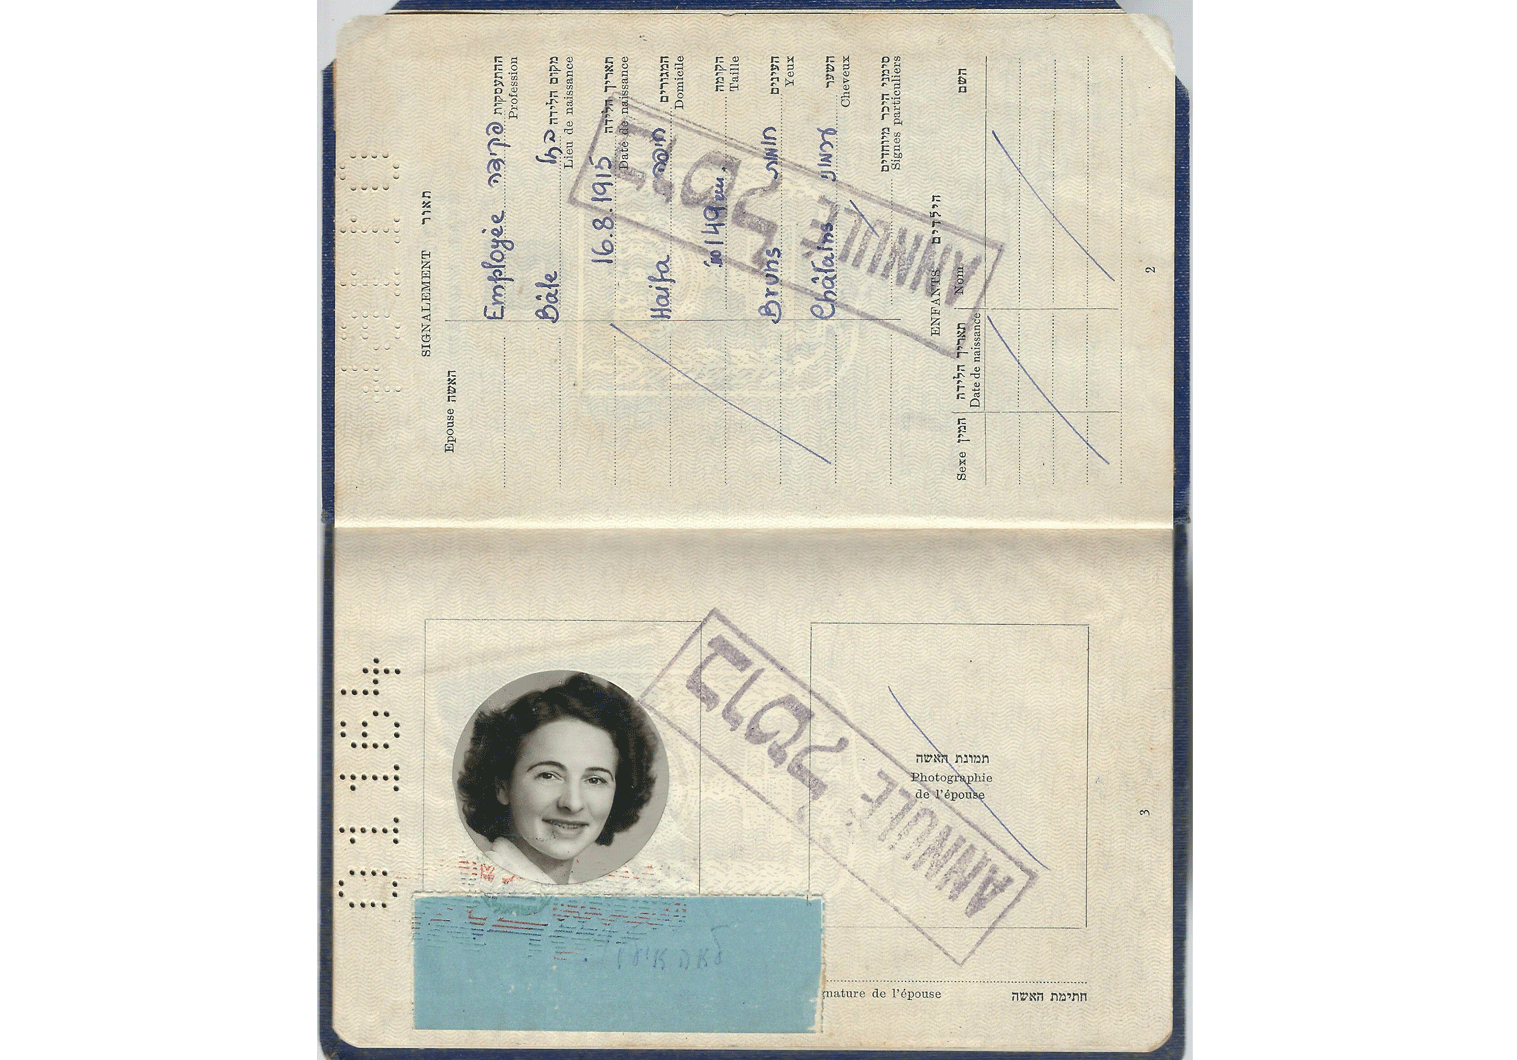 One of Israel's earliest PASSPORTS